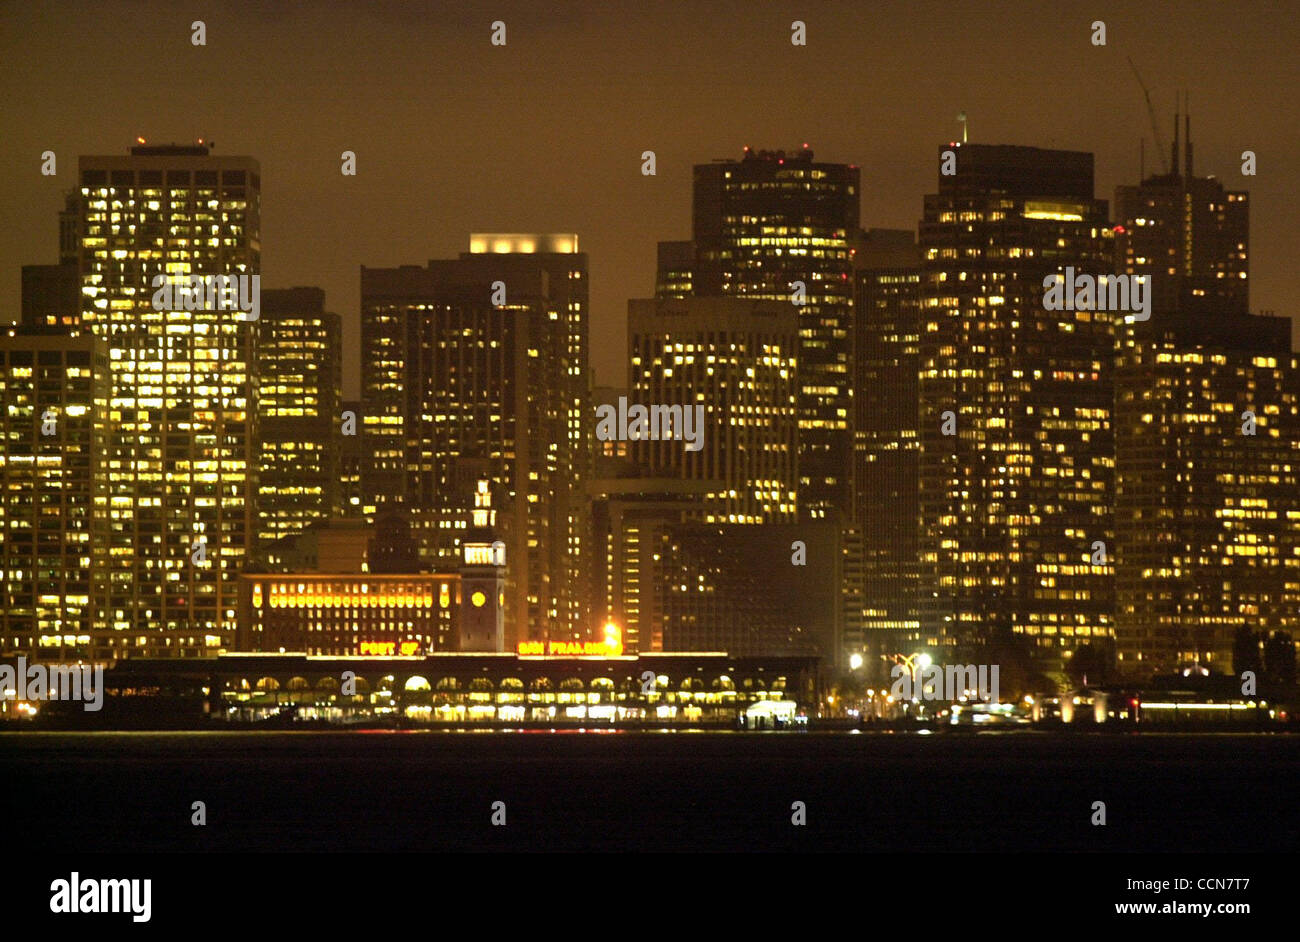 View of San Francisco taken from Treasure Island in San Francisco, Calif., on Monday August 30, 2004. (EDDIE LEDESMA/TIMES) - Stock Image